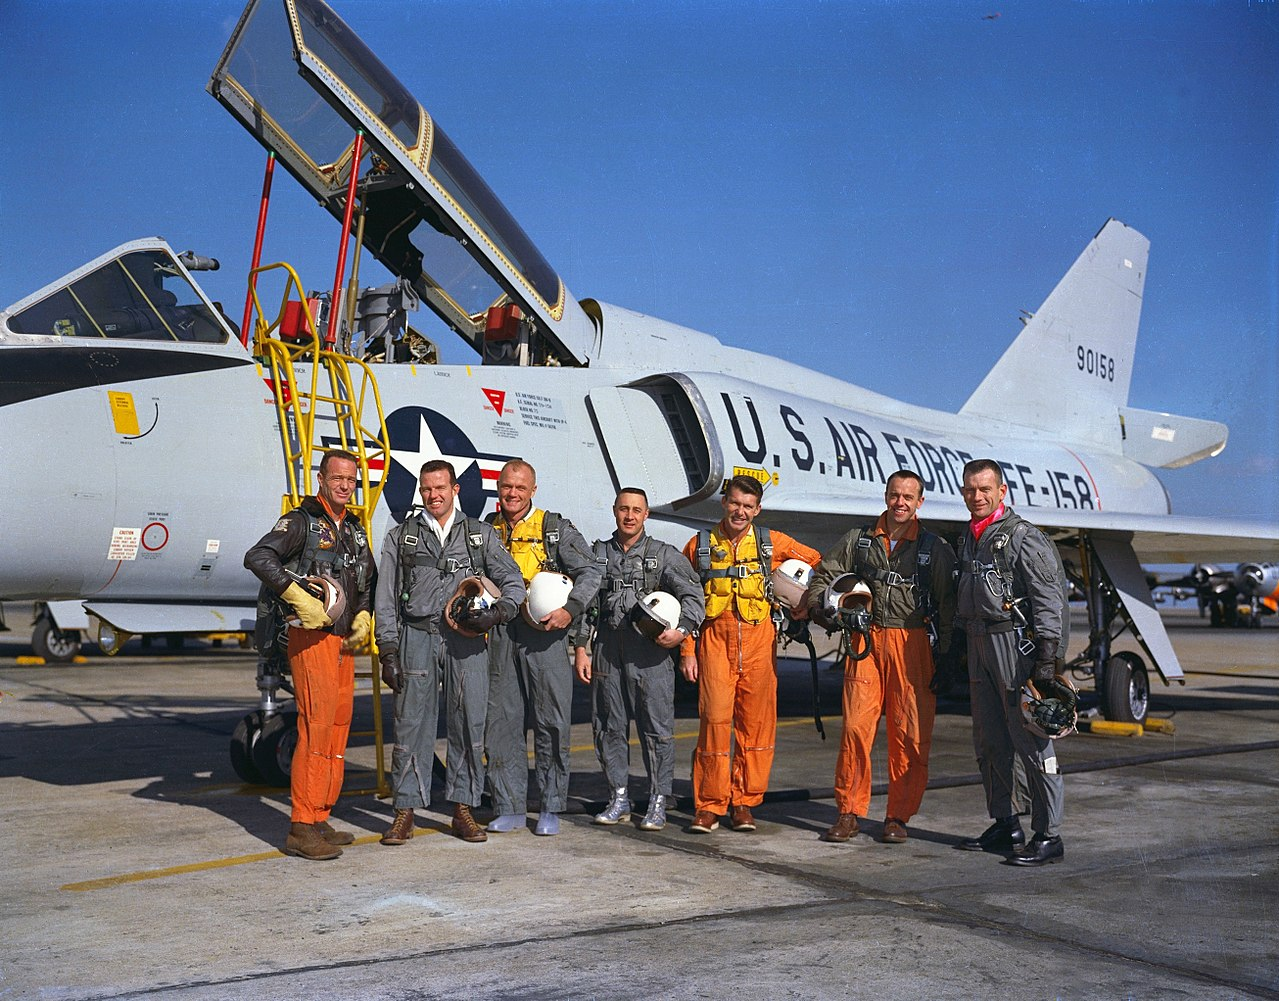 1280px-Mercury_Seven_astronauts_with_air